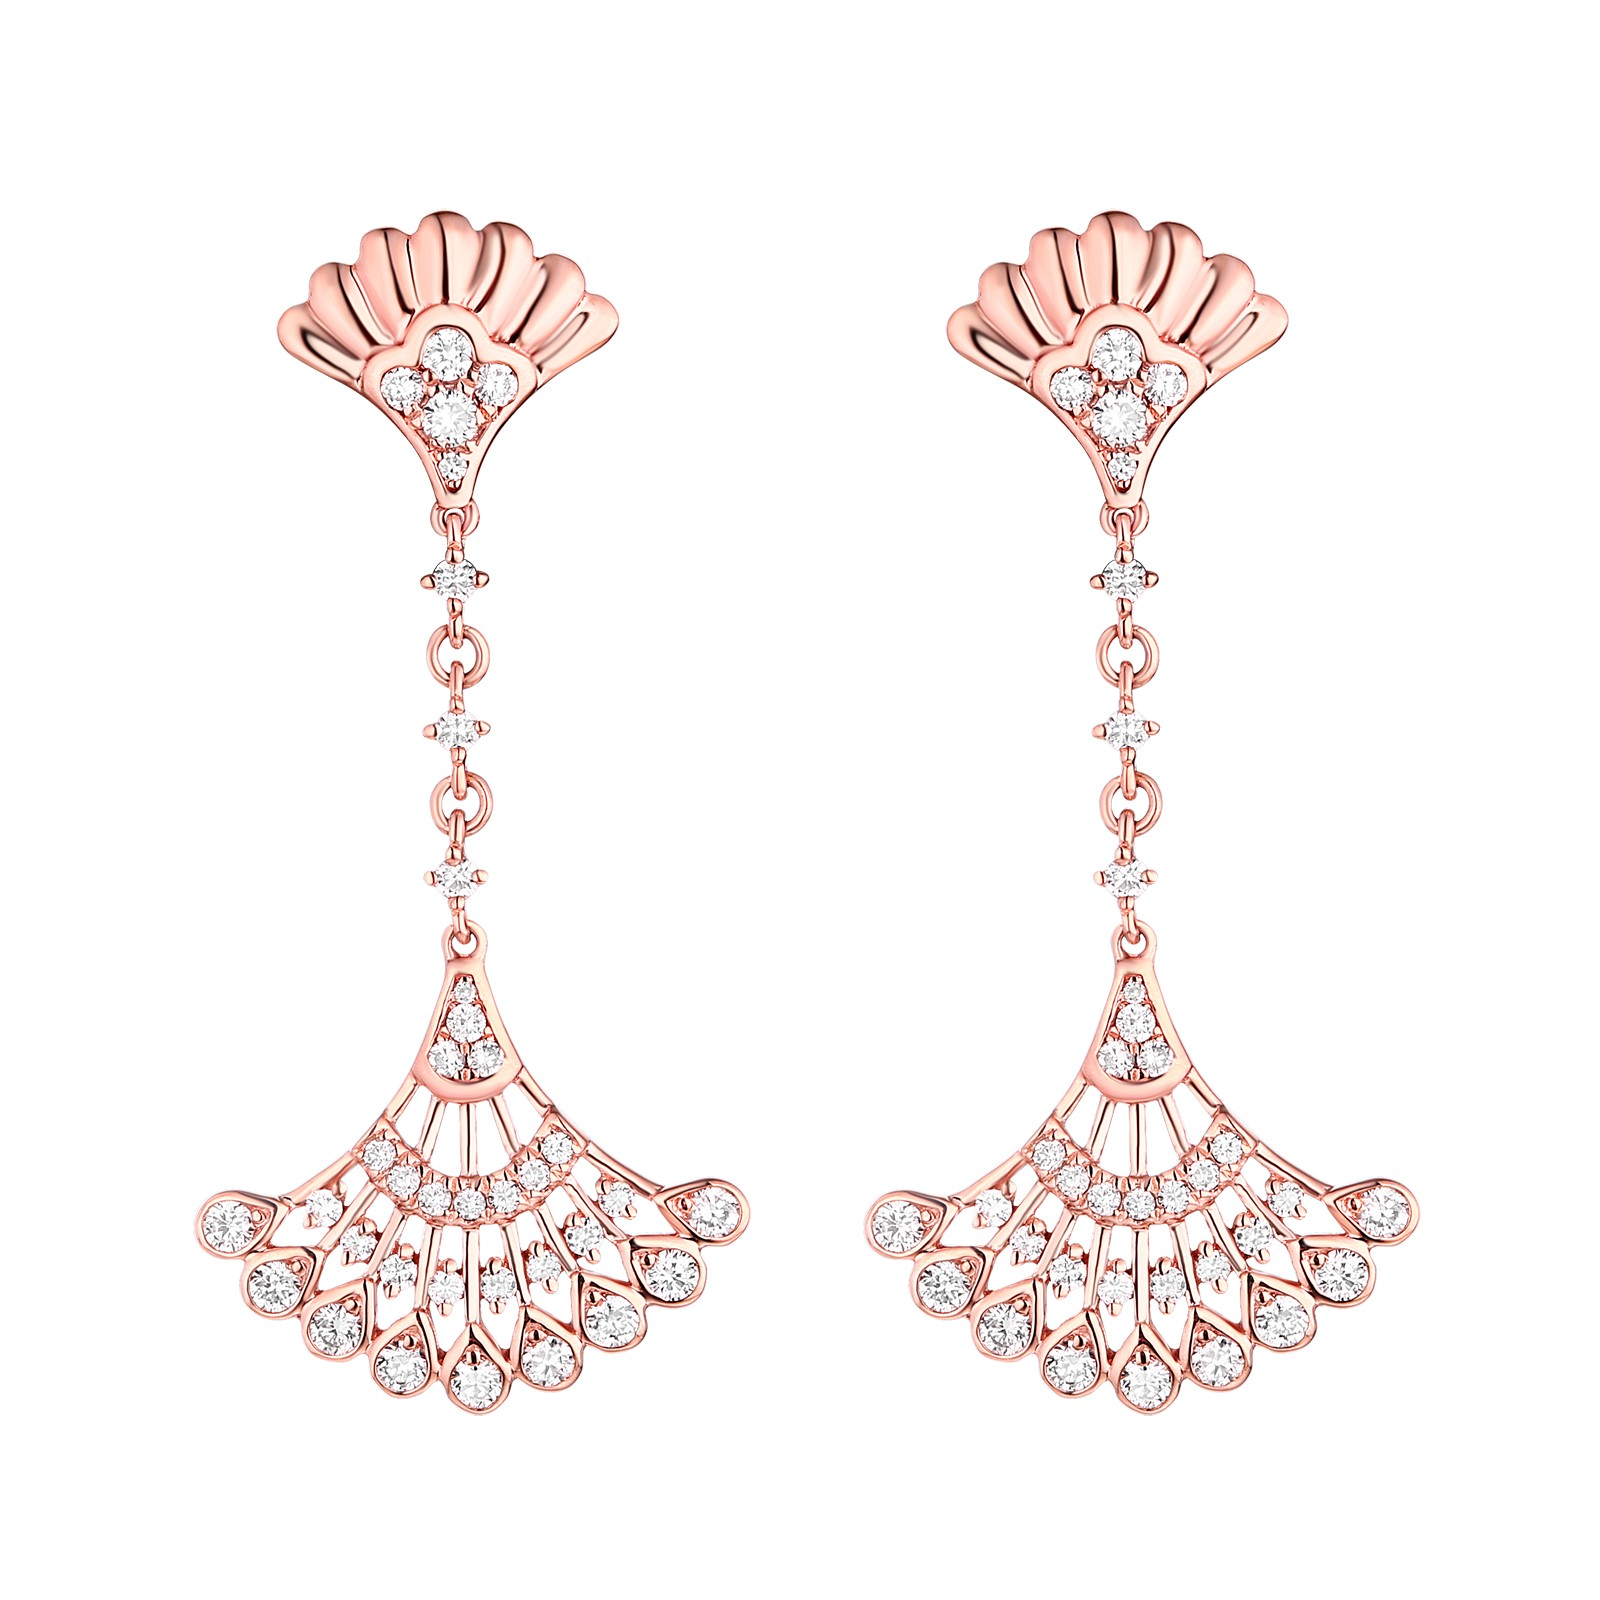 E29908WHT- 14K Rose Gold Diamond Earrings, 0.57 TCW